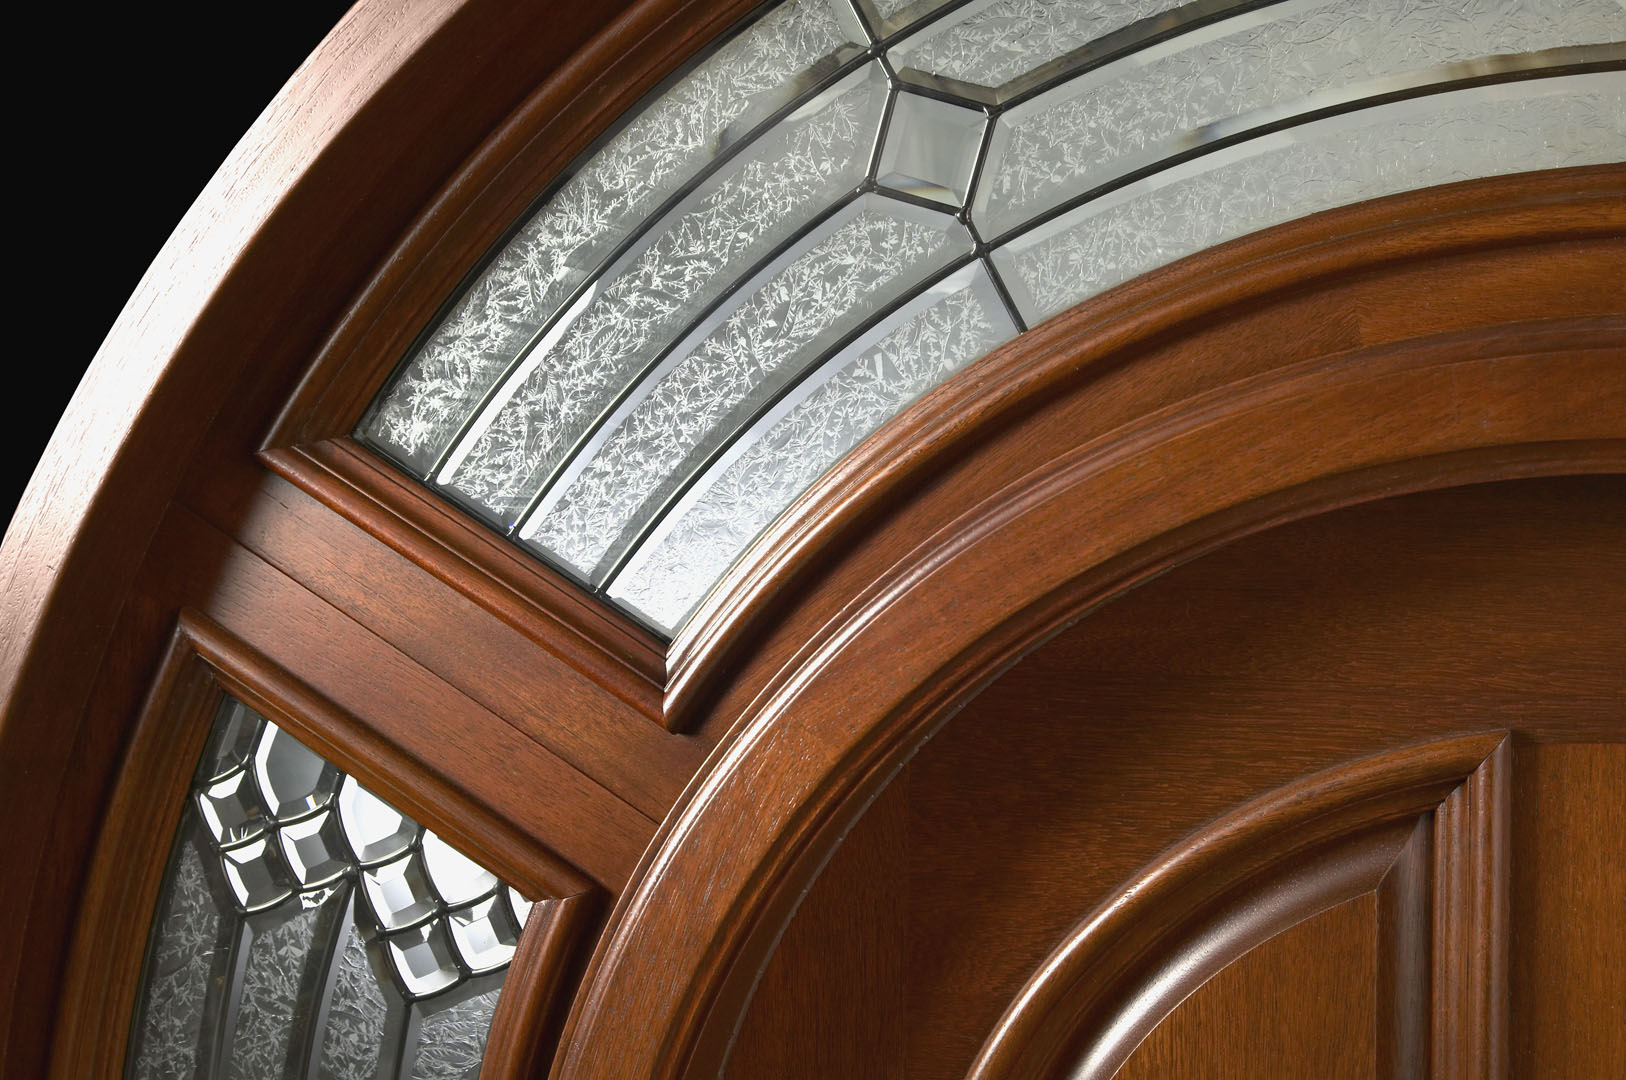 1080 #6E3E1E Exterior Round Top Doors With Arched Transom And Sidelites pic Round Top Exterior Doors 39811626